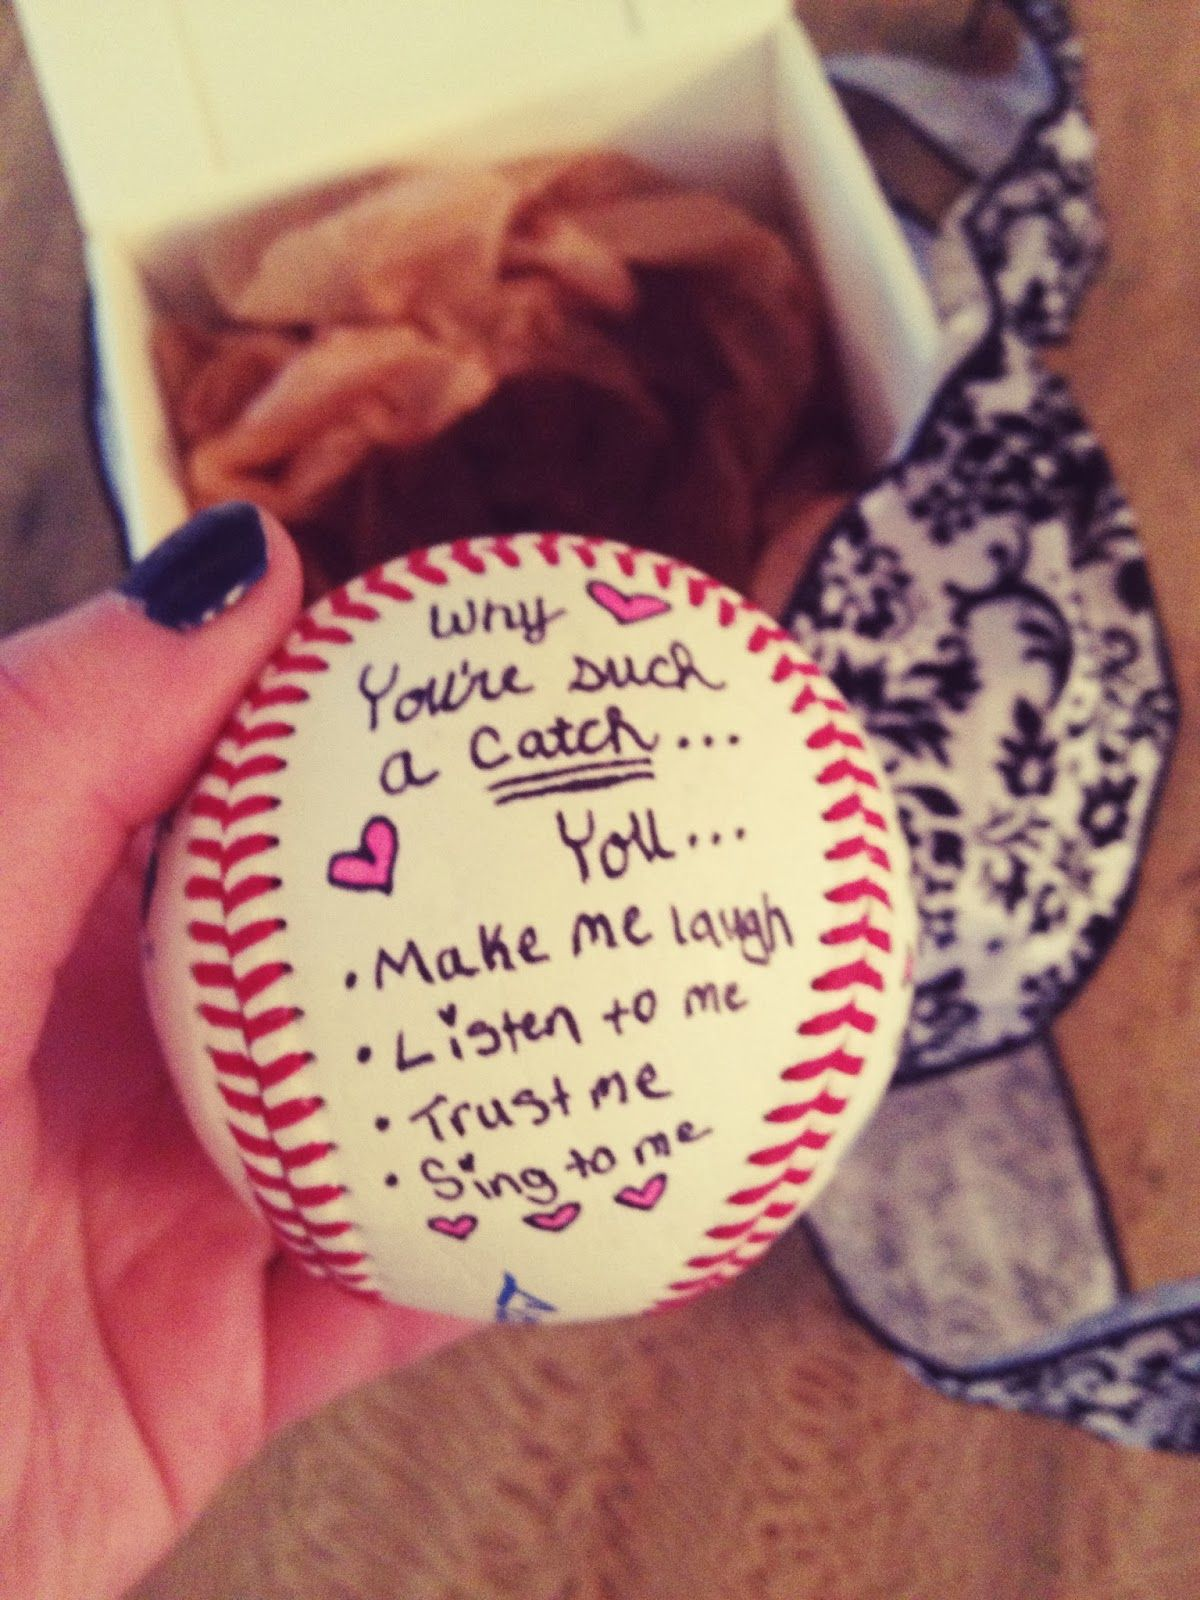 Youre such a catch baseball diy for him gift ideas pinterest youre such a catch baseball diy for him baseball boyfriend giftsboyfriend ideaseasy negle Image collections